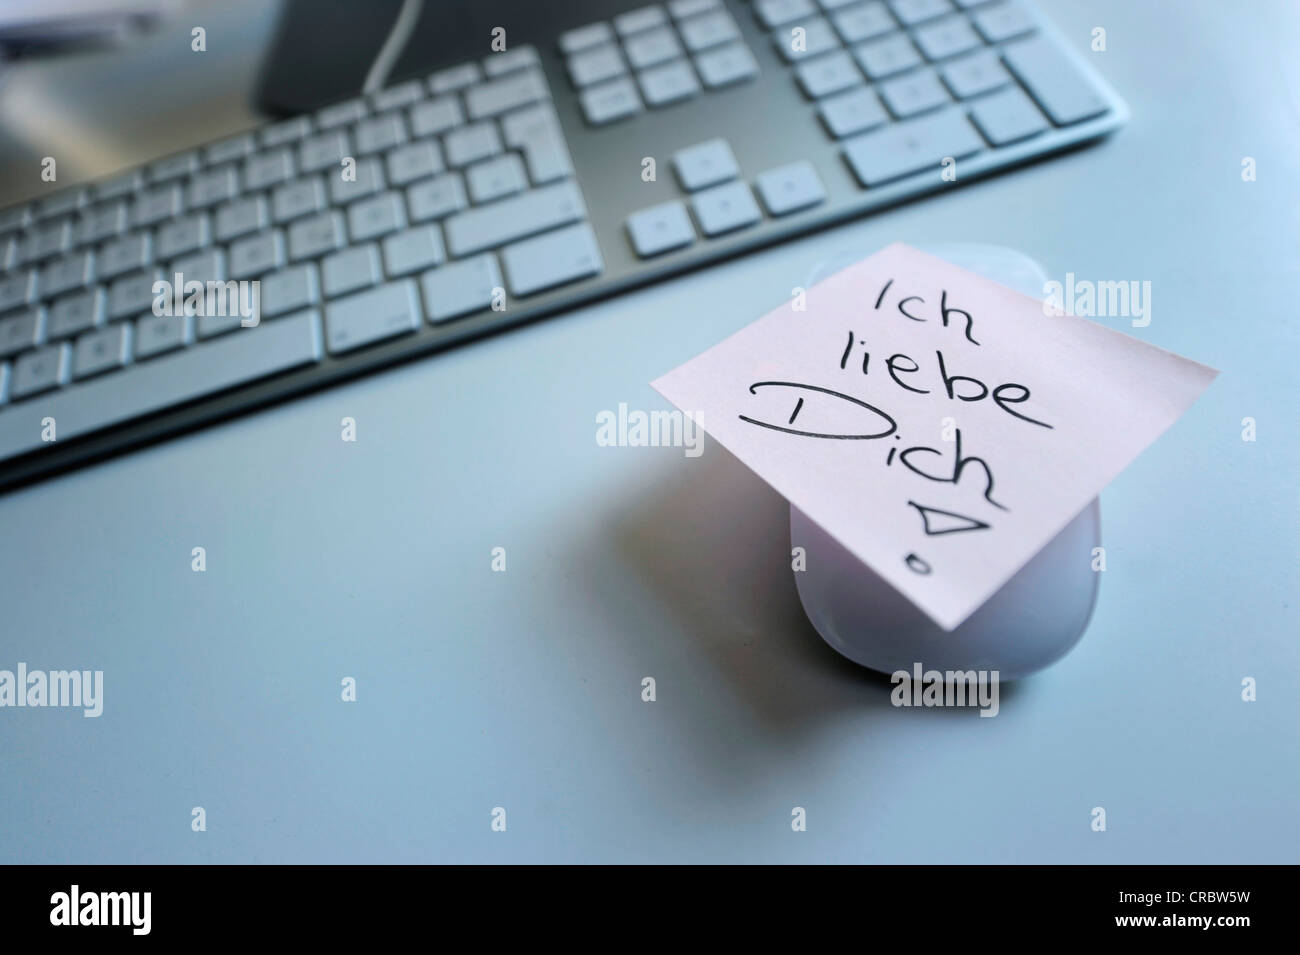 Sticky note with the words 'Ich liebe Dich', German for 'I love you', next to computer keyboard, - Stock Image